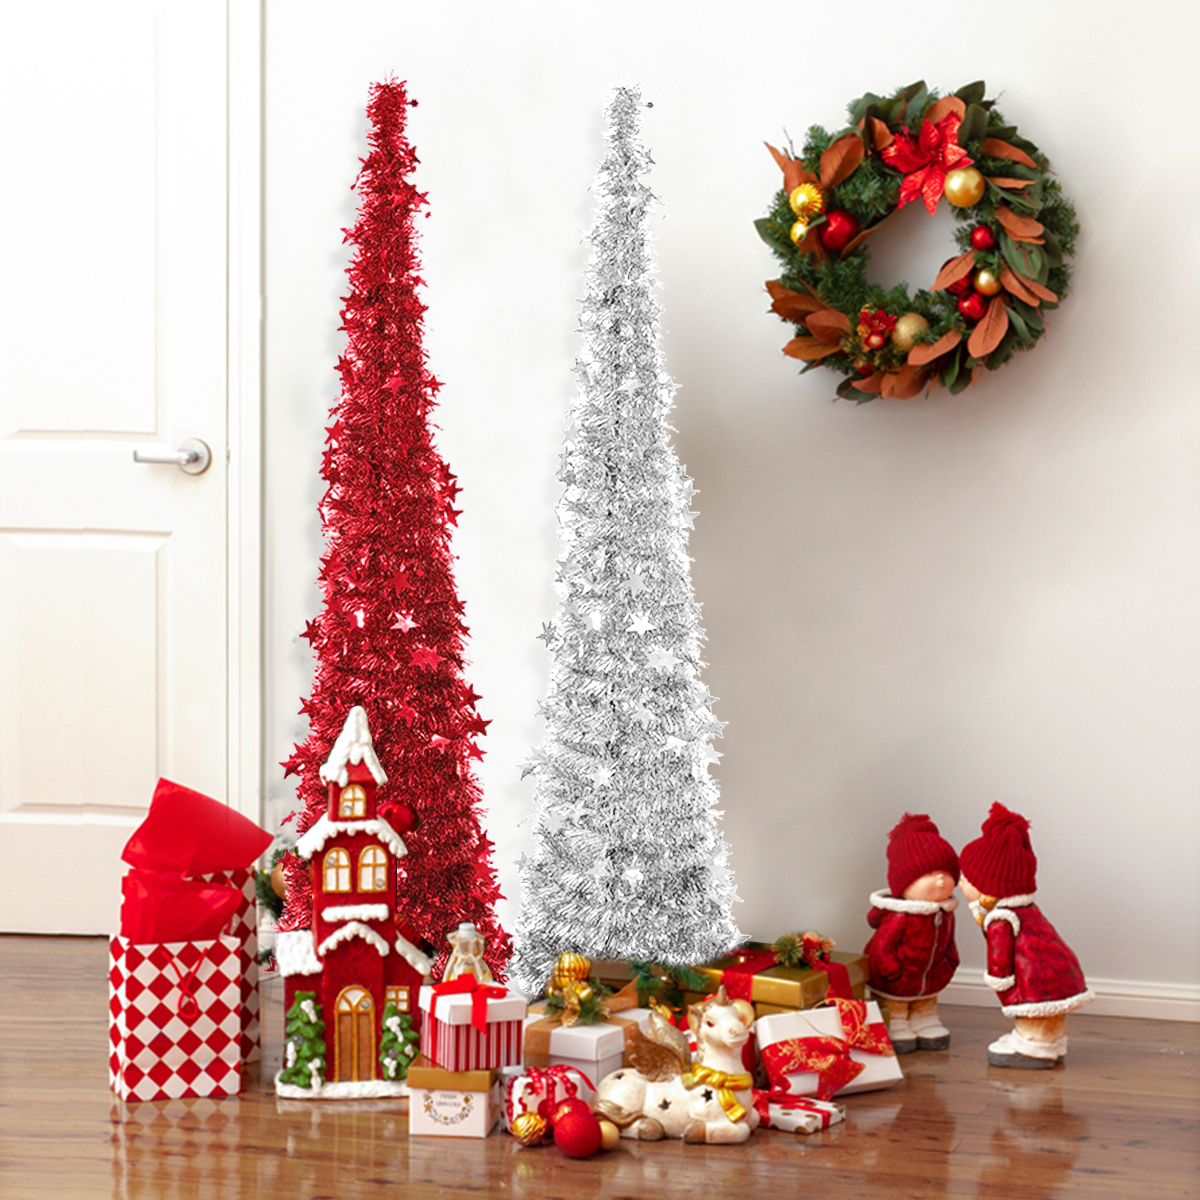 Collapsible Christmas Tree.Details About 4ft Christmas Tree Artificial Collapsible Sequin Stand Home Decor Indoor Outdoor